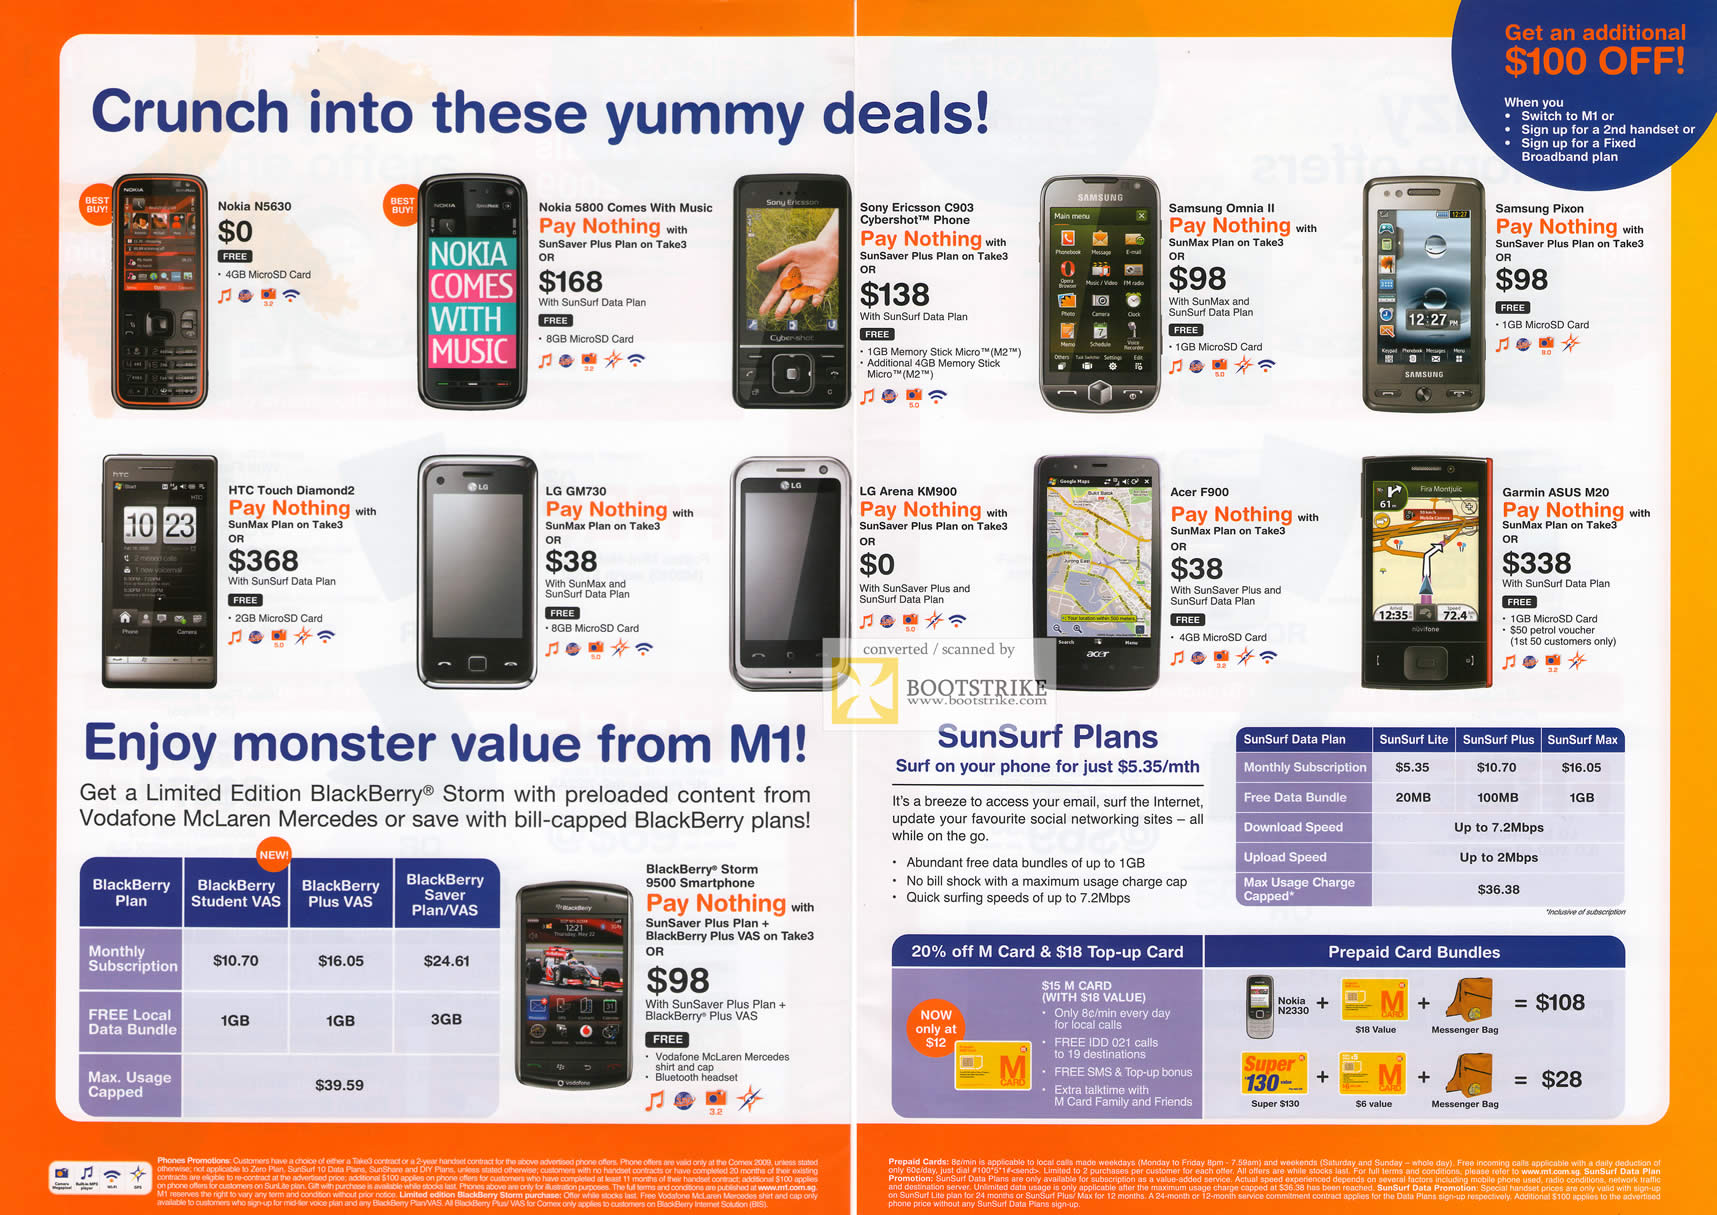 Comex 2009 price list image brochure of M1 Mobile Phone Deals Nokia Samsung Sony Ericsson Acer Garmin HTC LG